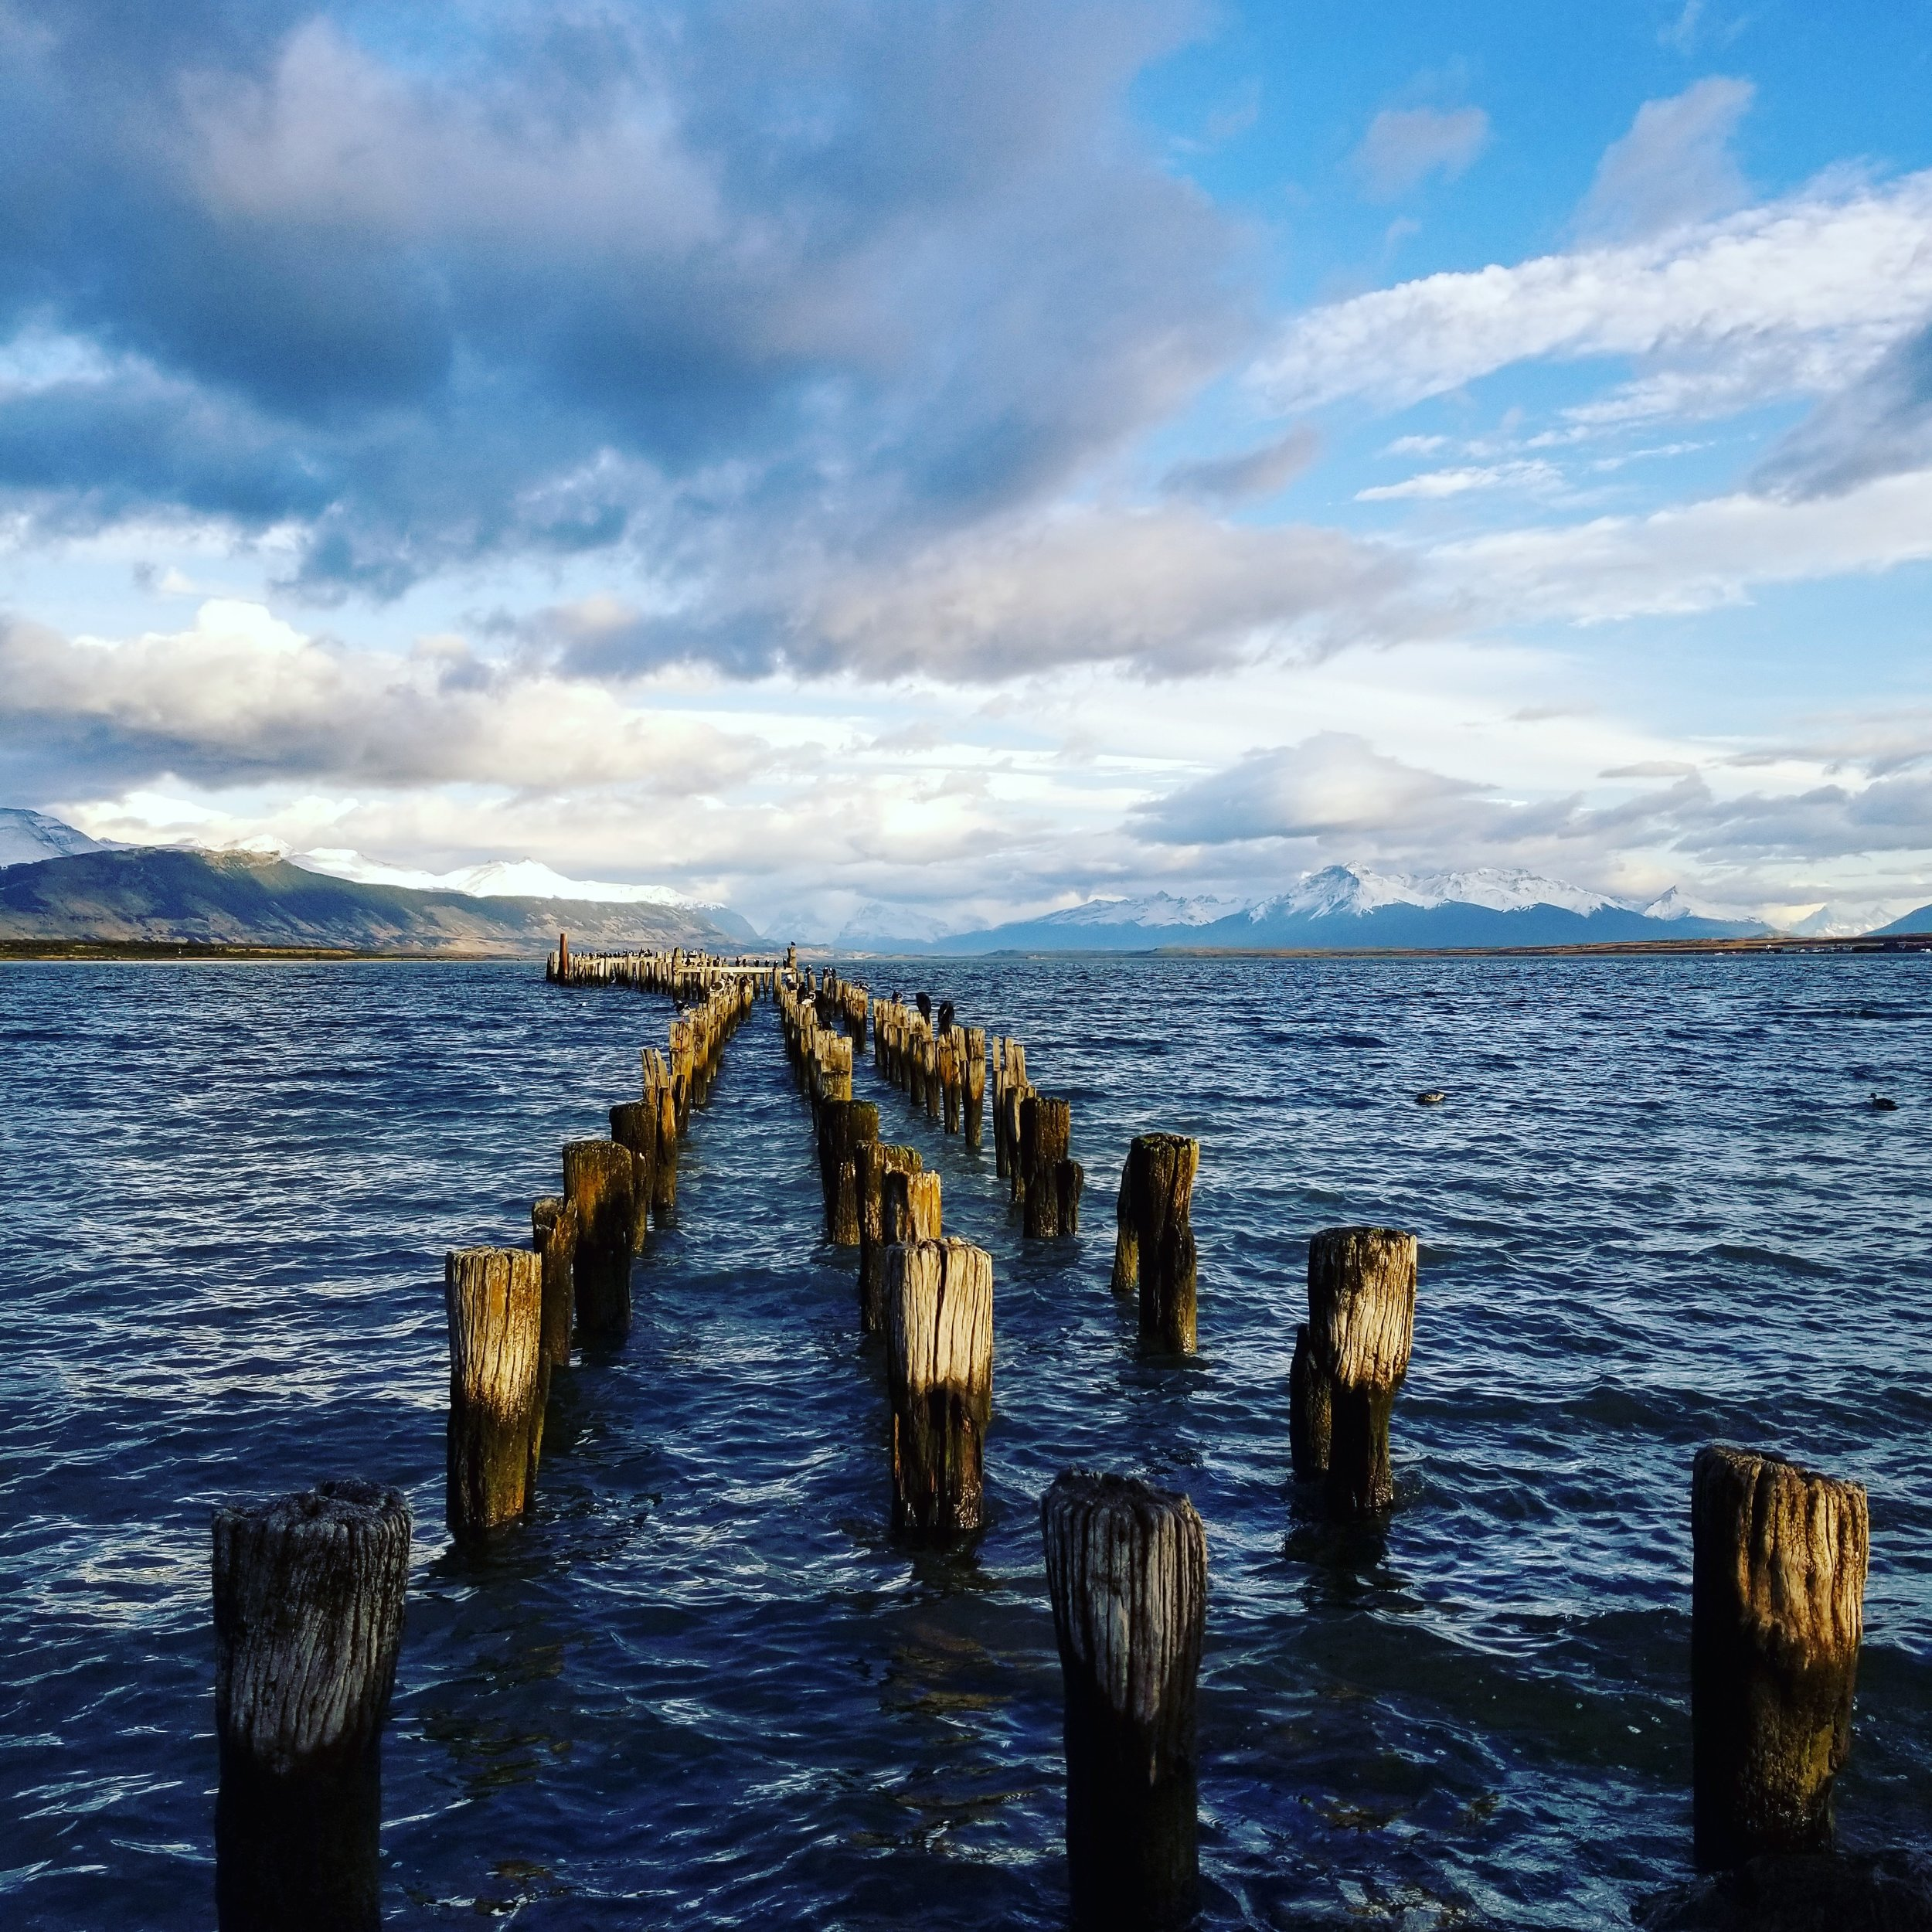 The view of the old pier in Puerto Natales!